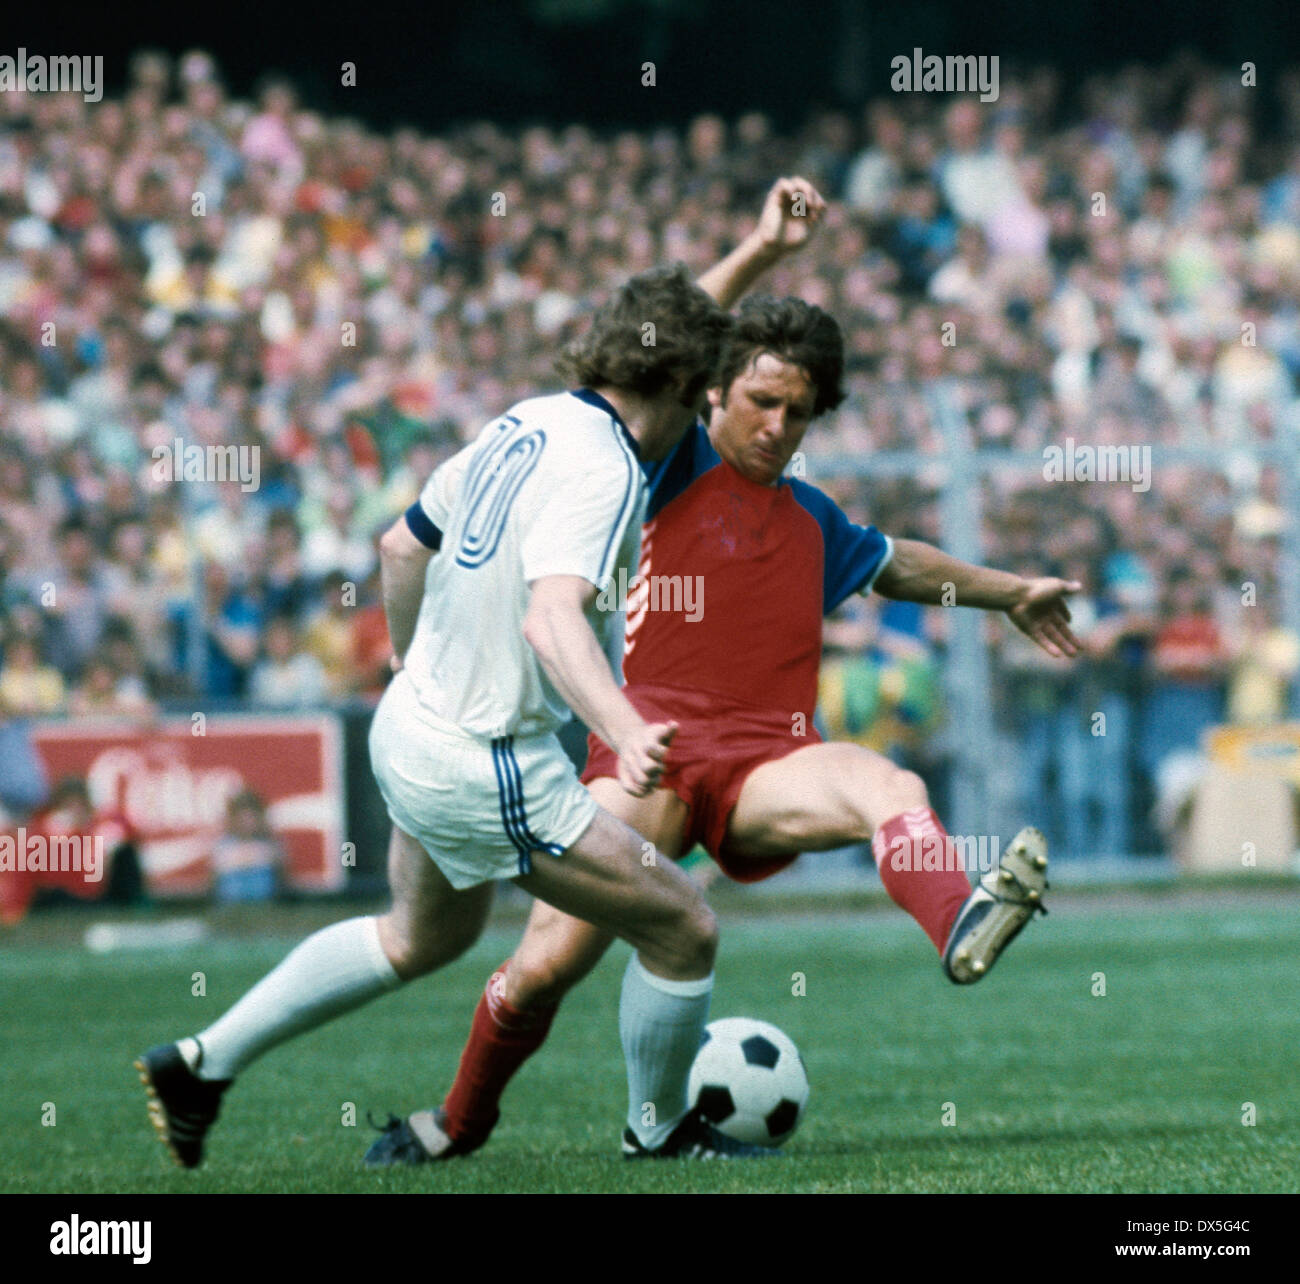 football, 2. Bundesliga Nord, 2. Bundesliga Sued, 1974/1975, relegation match to Bundesliga 1975/1976, return leg, Grotenburg Stadium in Krefeld, FC Bayer 05 Uerdingen versus FK Pirmasens 6:0, scene of the match, Dieter Weinkauff (Pirmasens) left and Hans - Stock Image